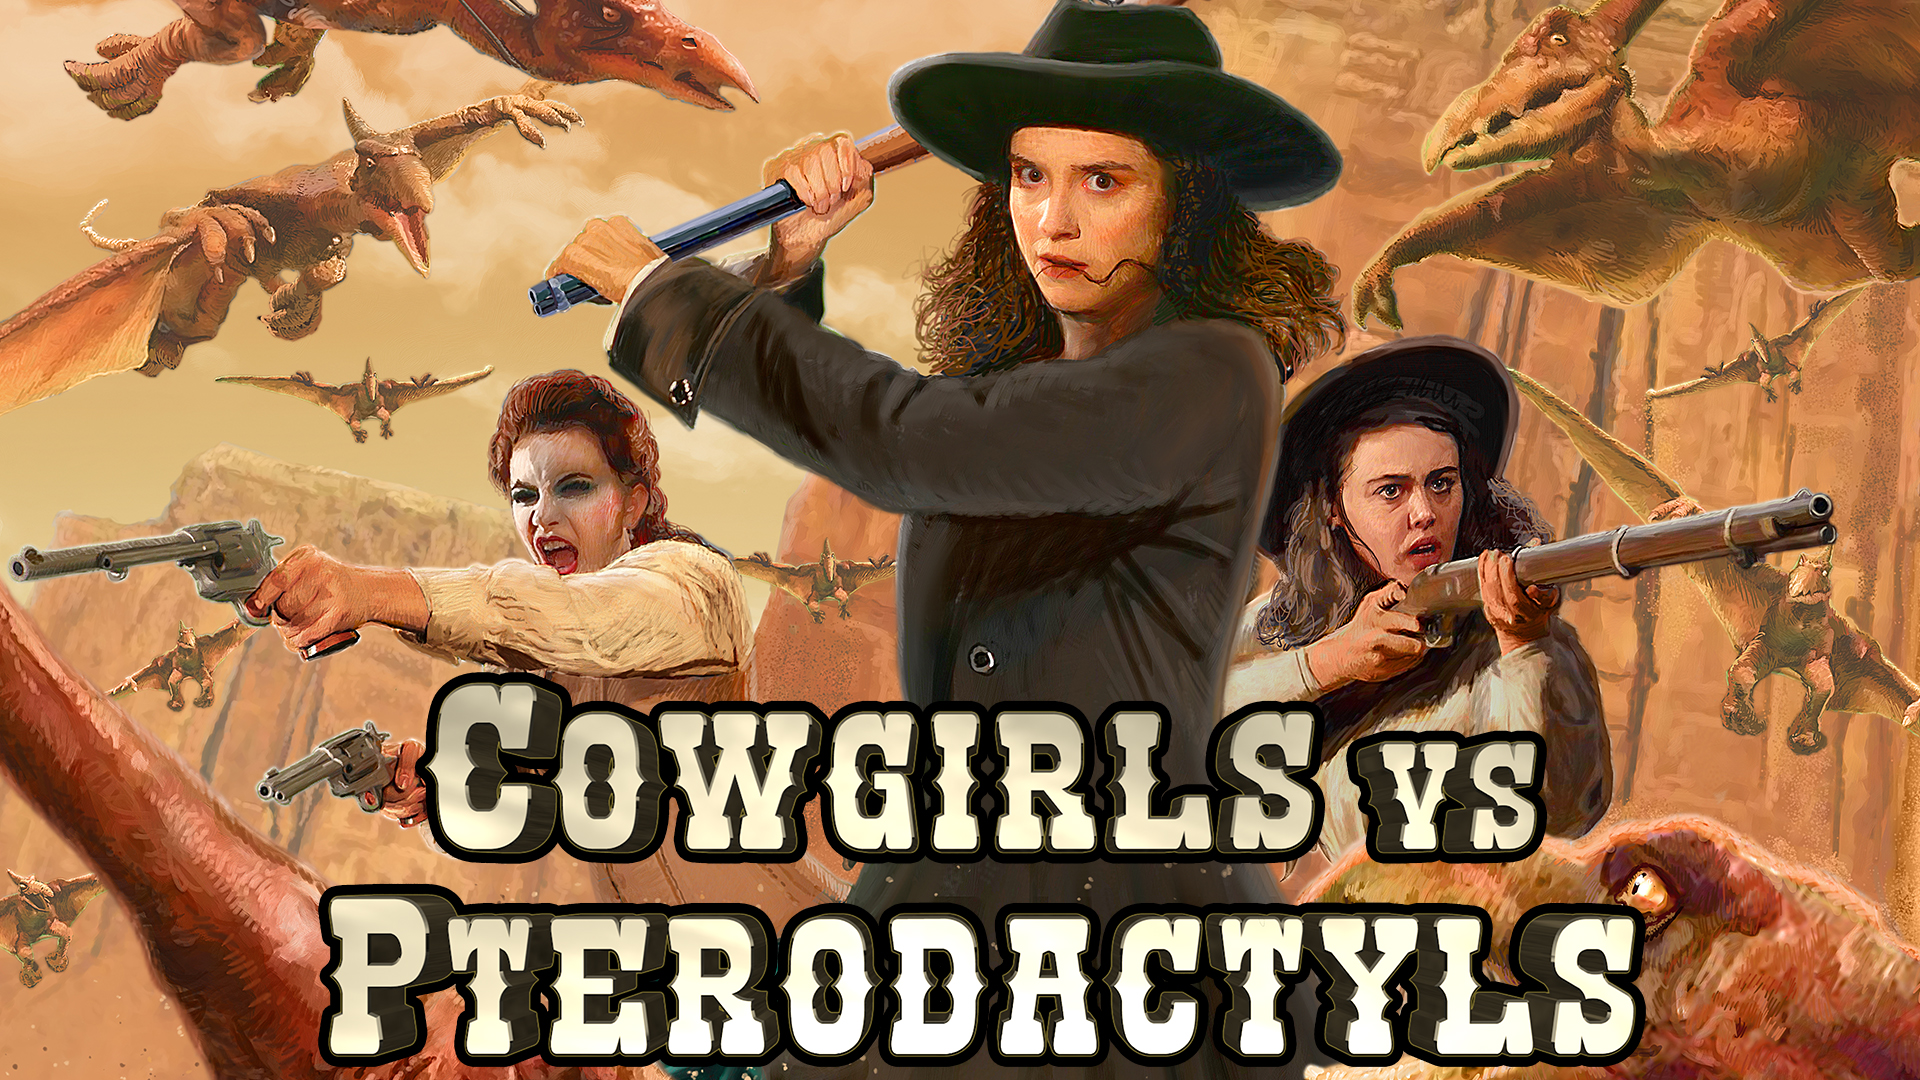 Cowgirls vs Pterodactyls